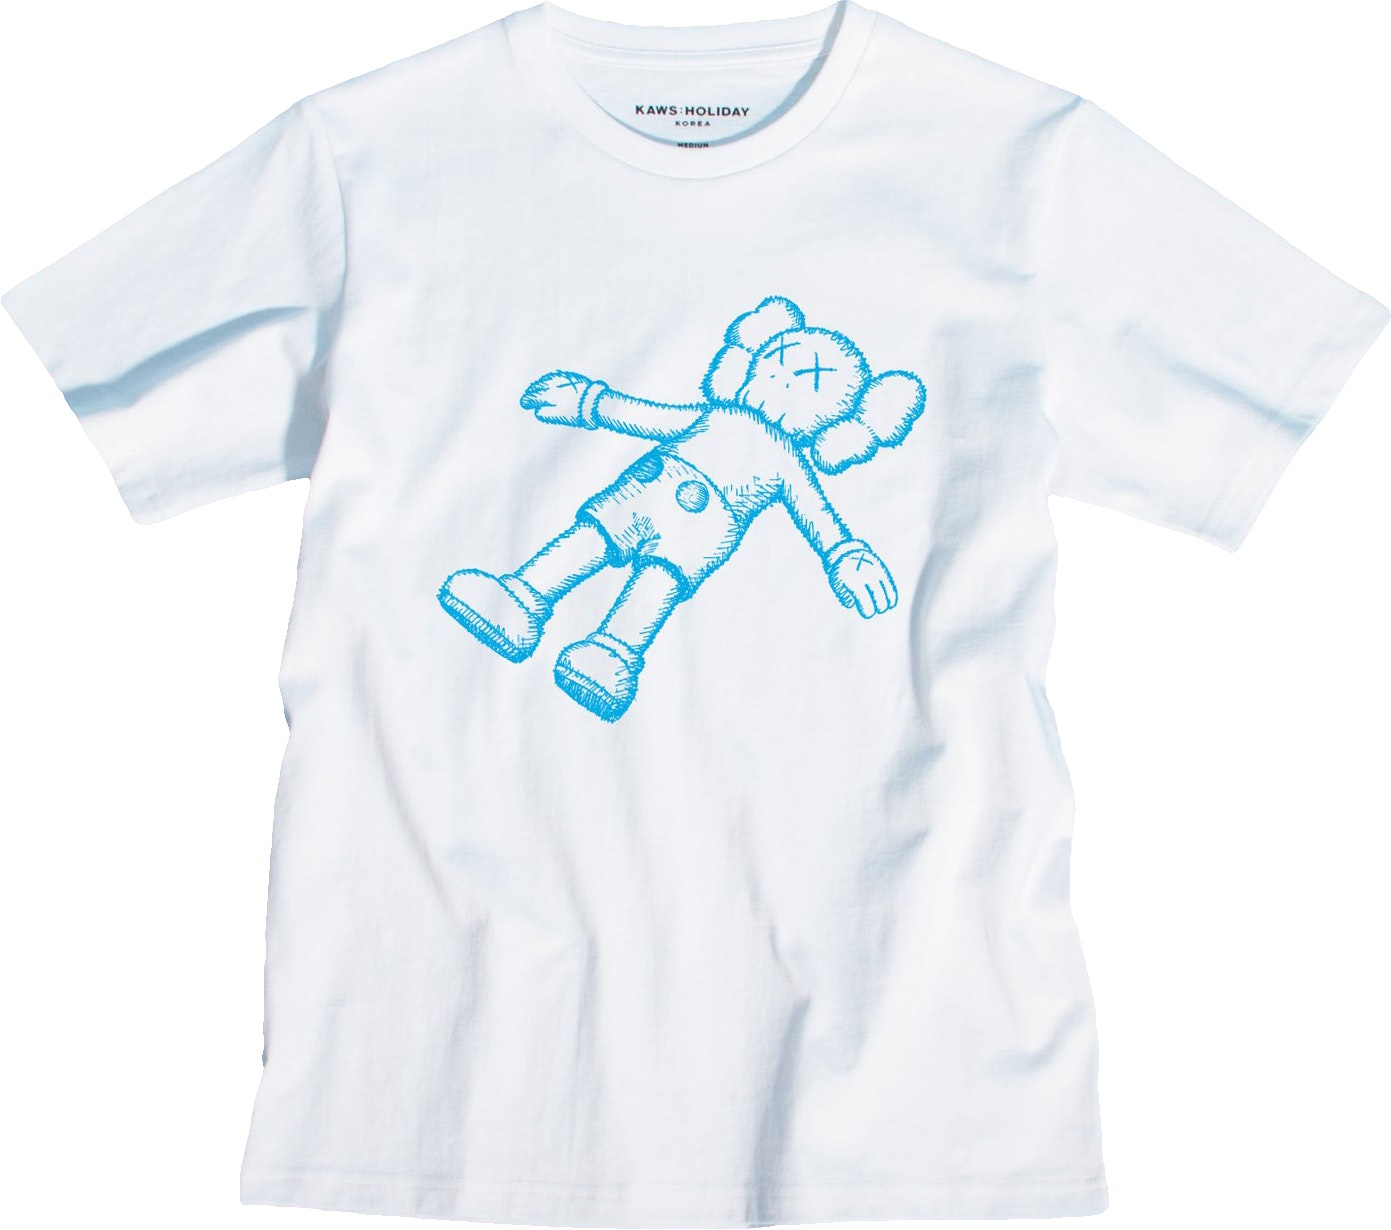 Kaws Holiday Companion Tee White